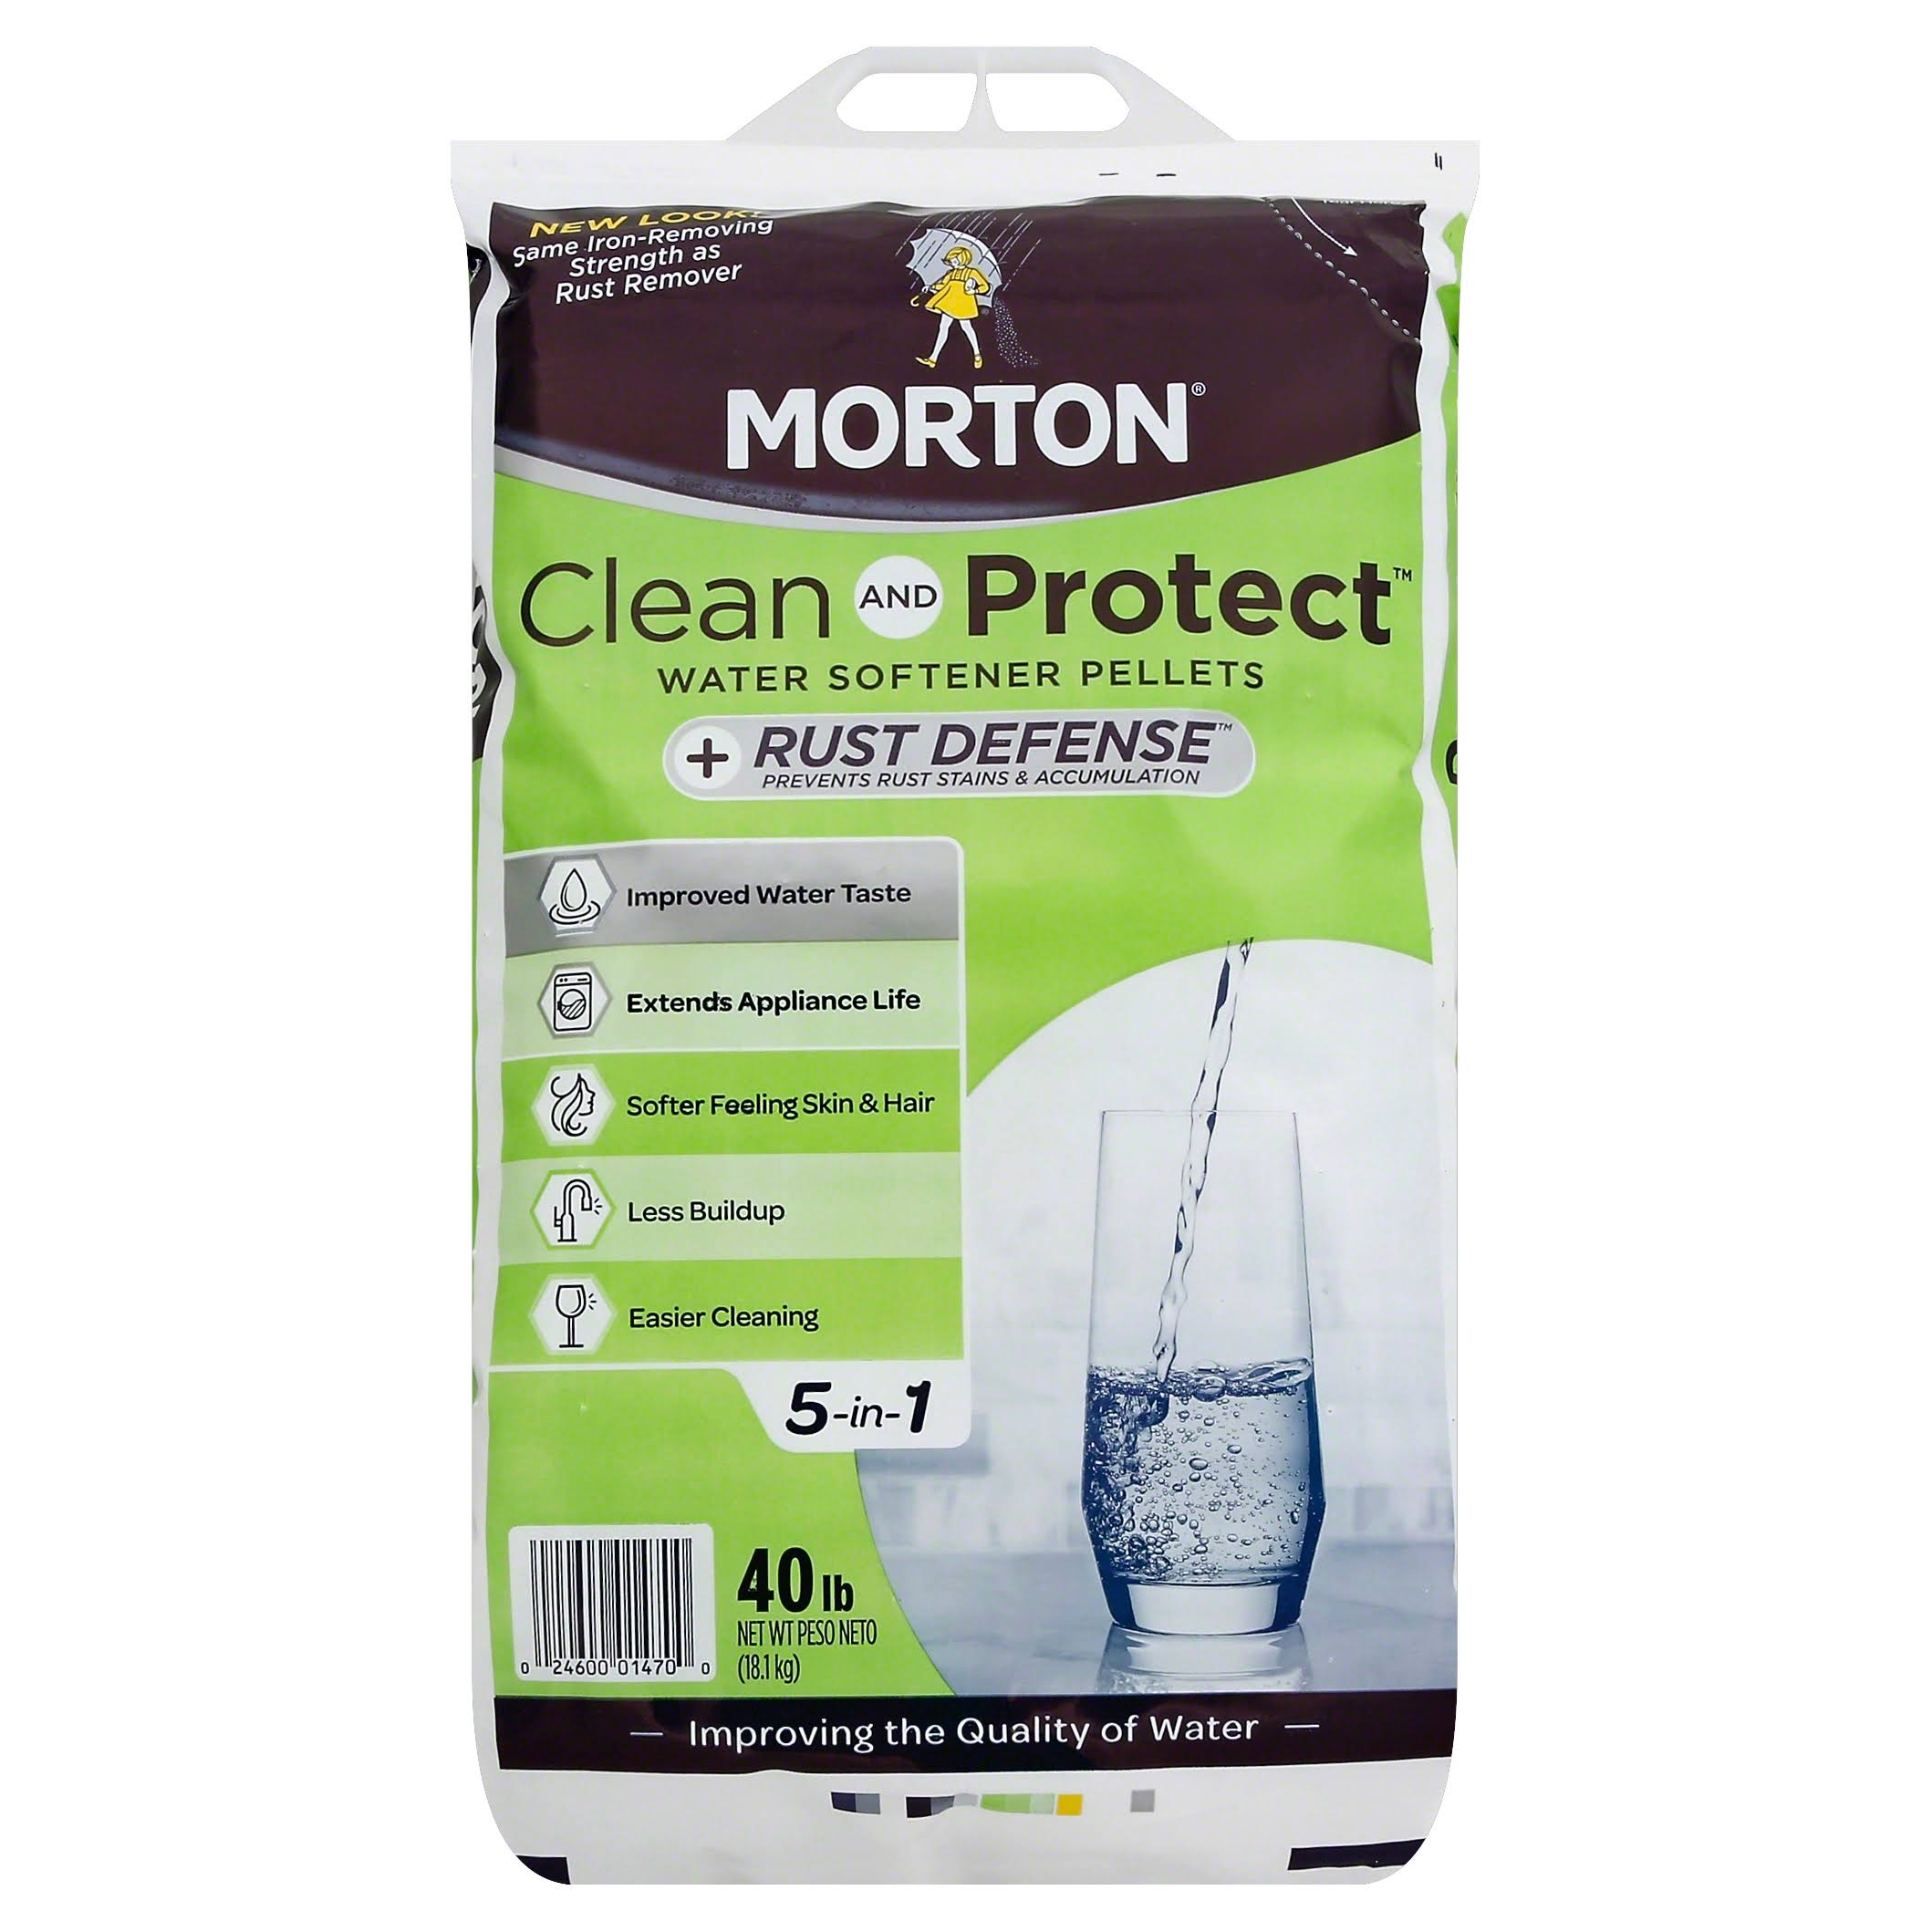 Morton Salt Clean and Protect Plus Rust Defense Pellets - 40lb